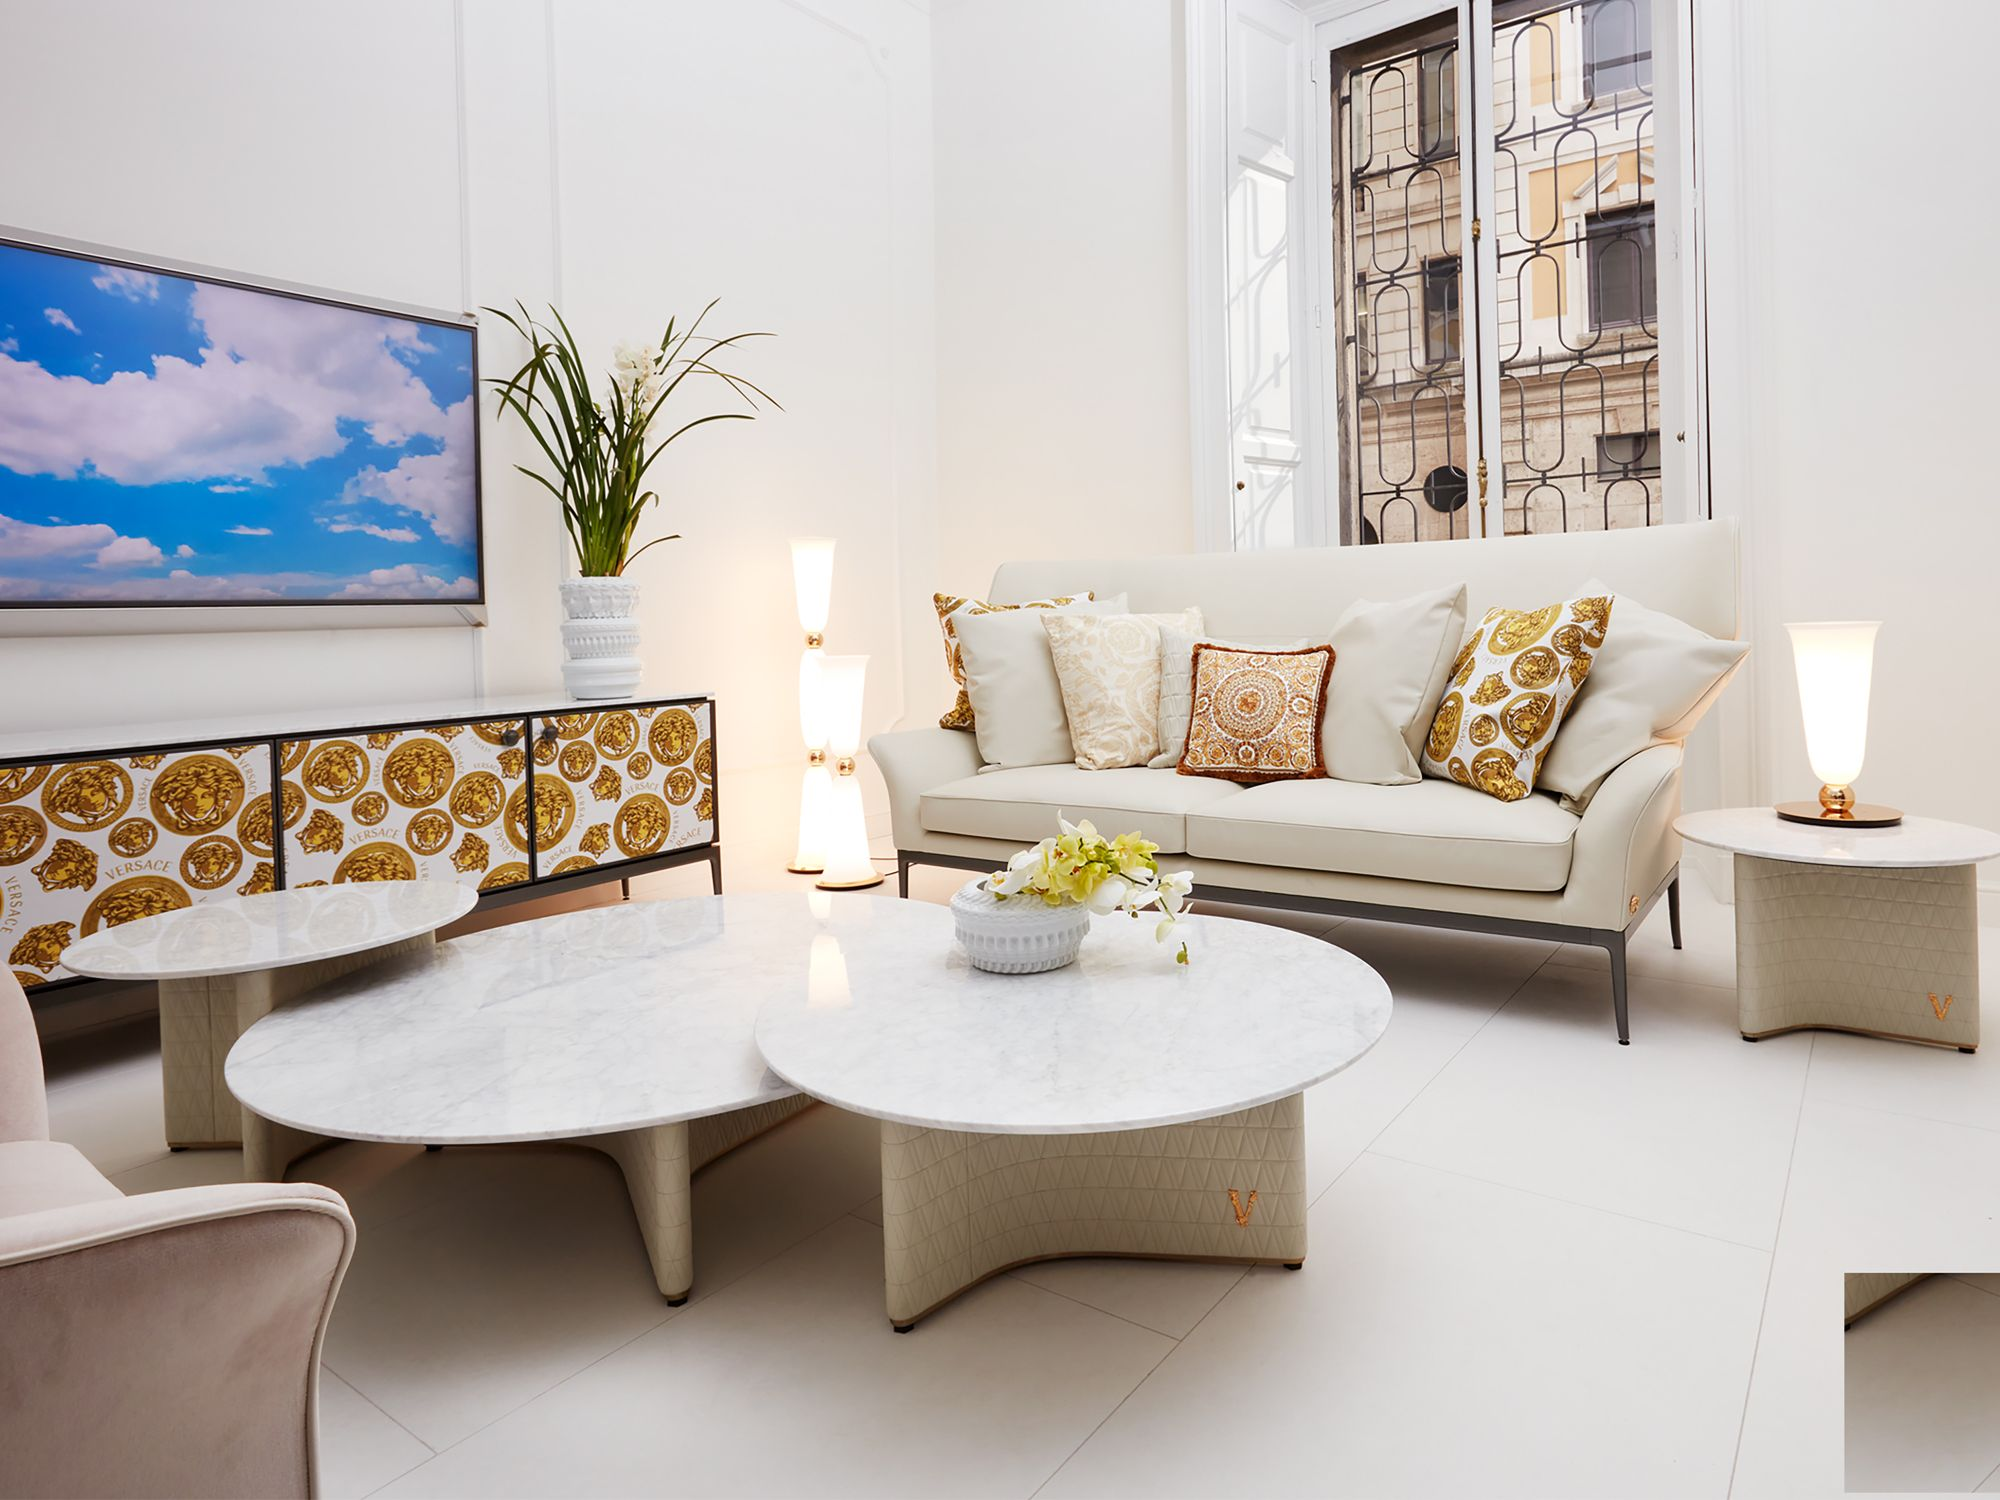 The Versace Home flagship features distinctive colour palettes in different areas; this one pictured here displays a chic monochromatic white theme